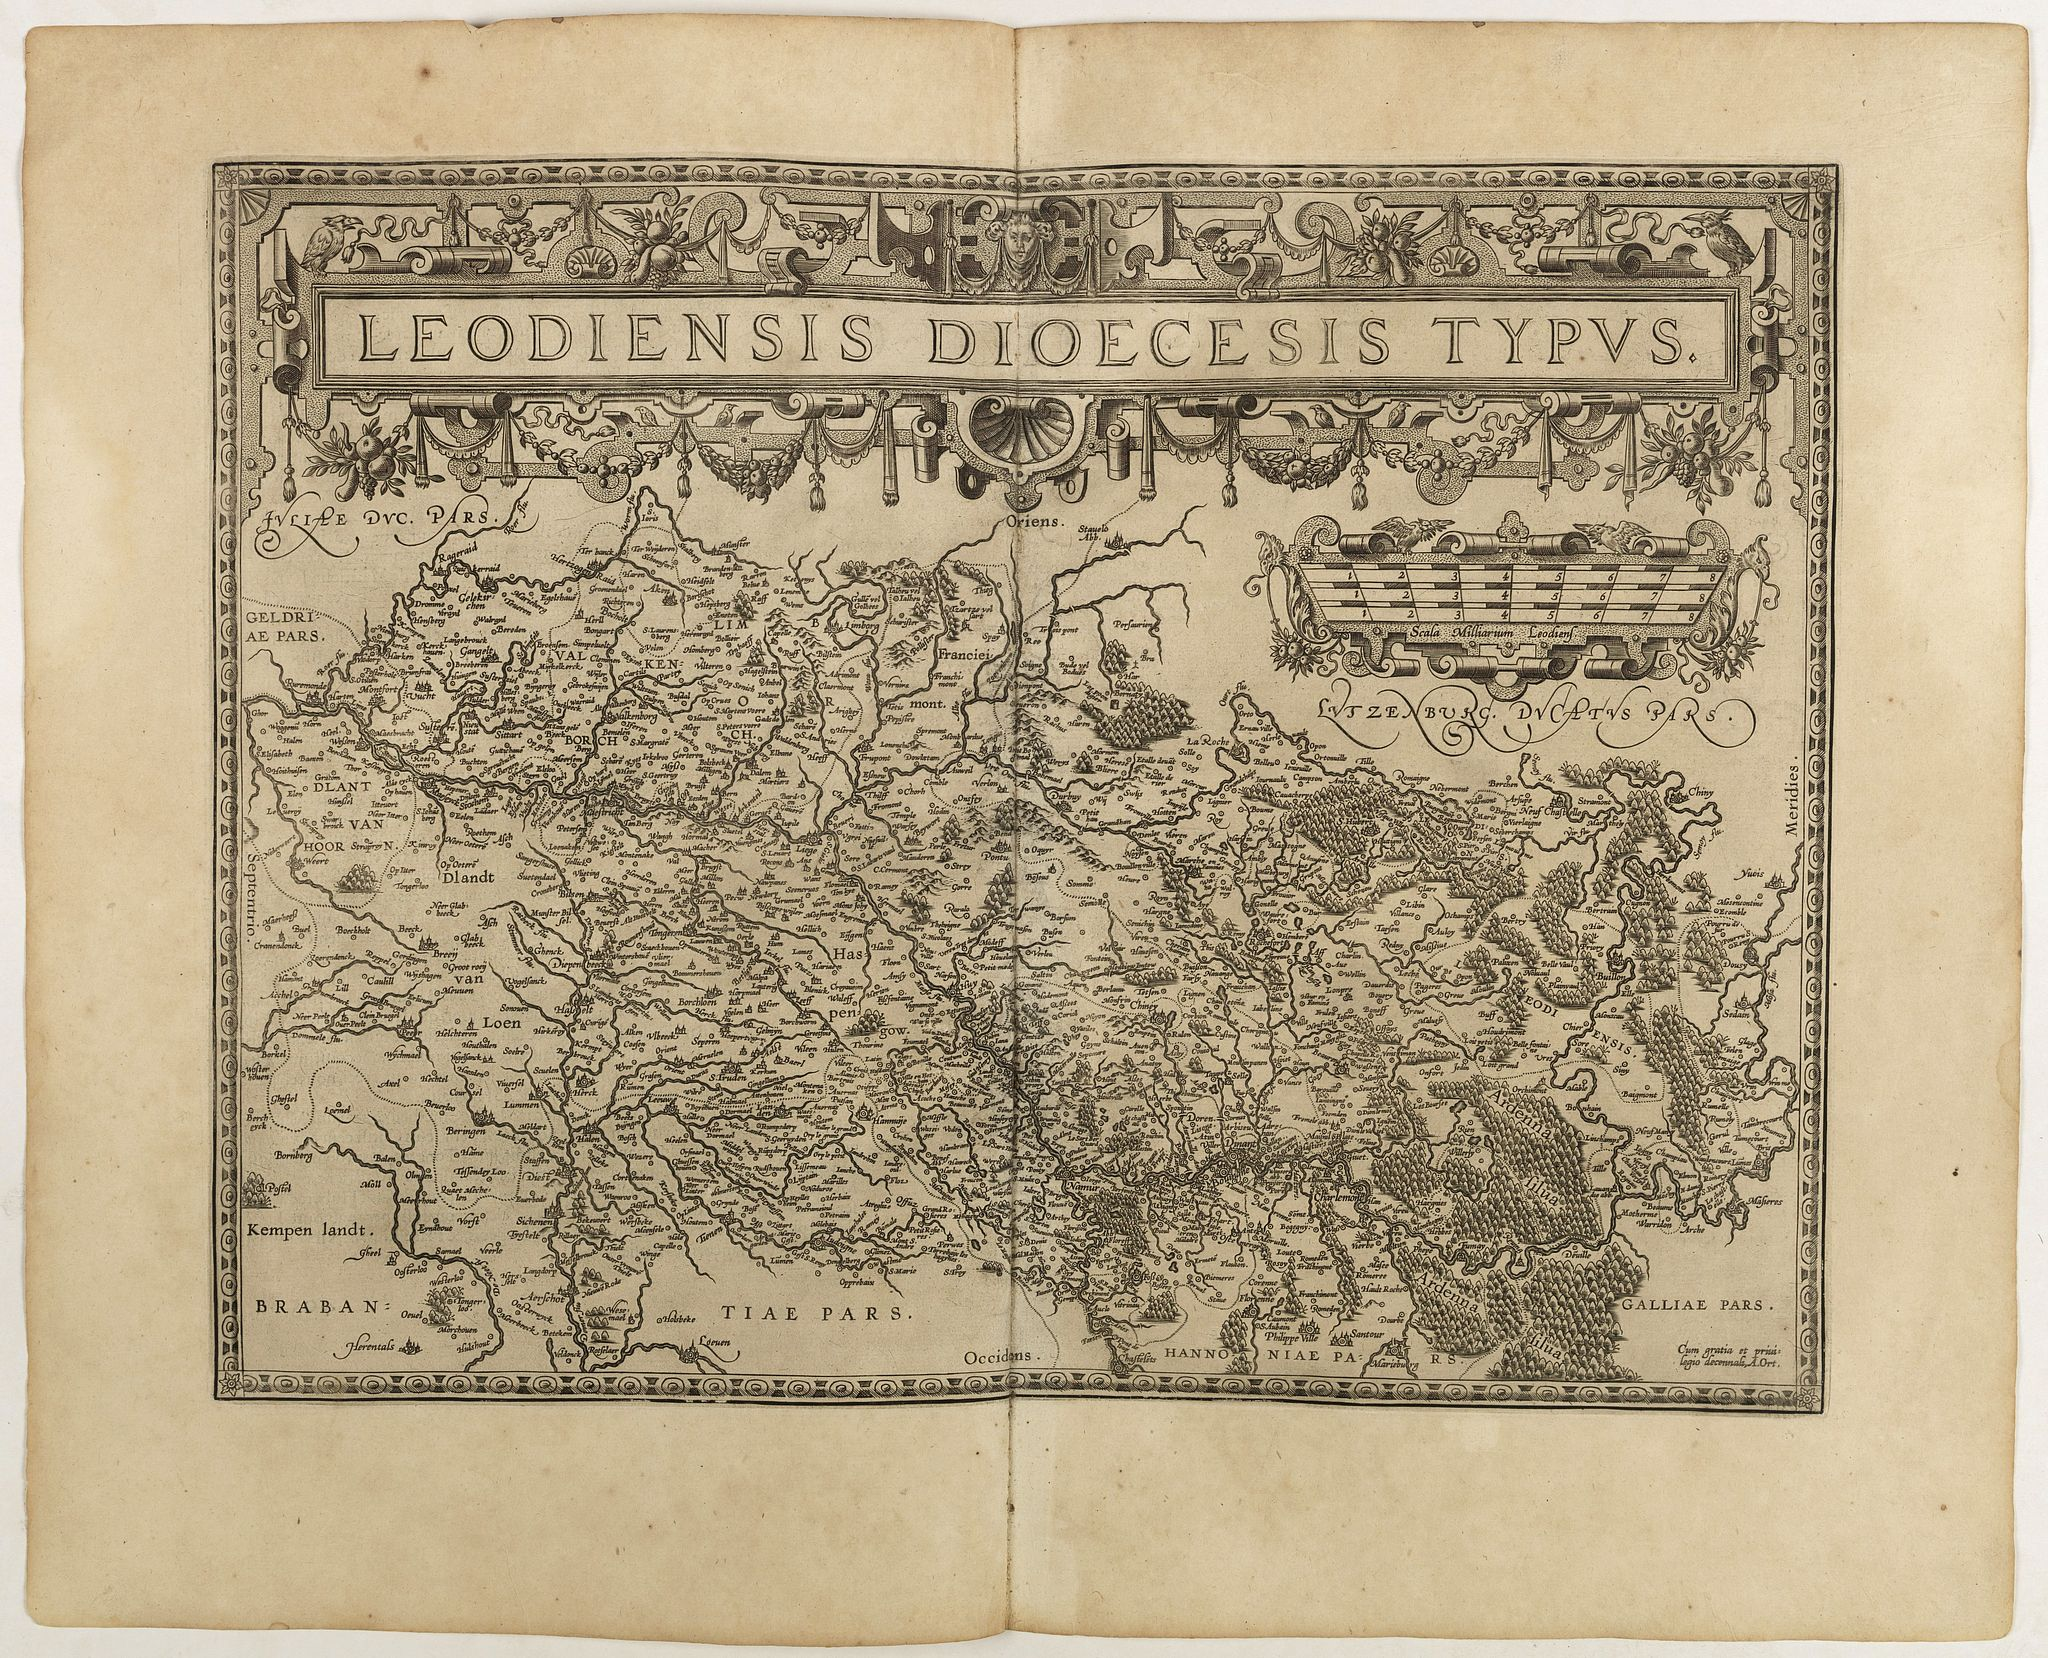 ORTELIUS, A.,  Leodiensis Diocesis Typus., antique map, old maps